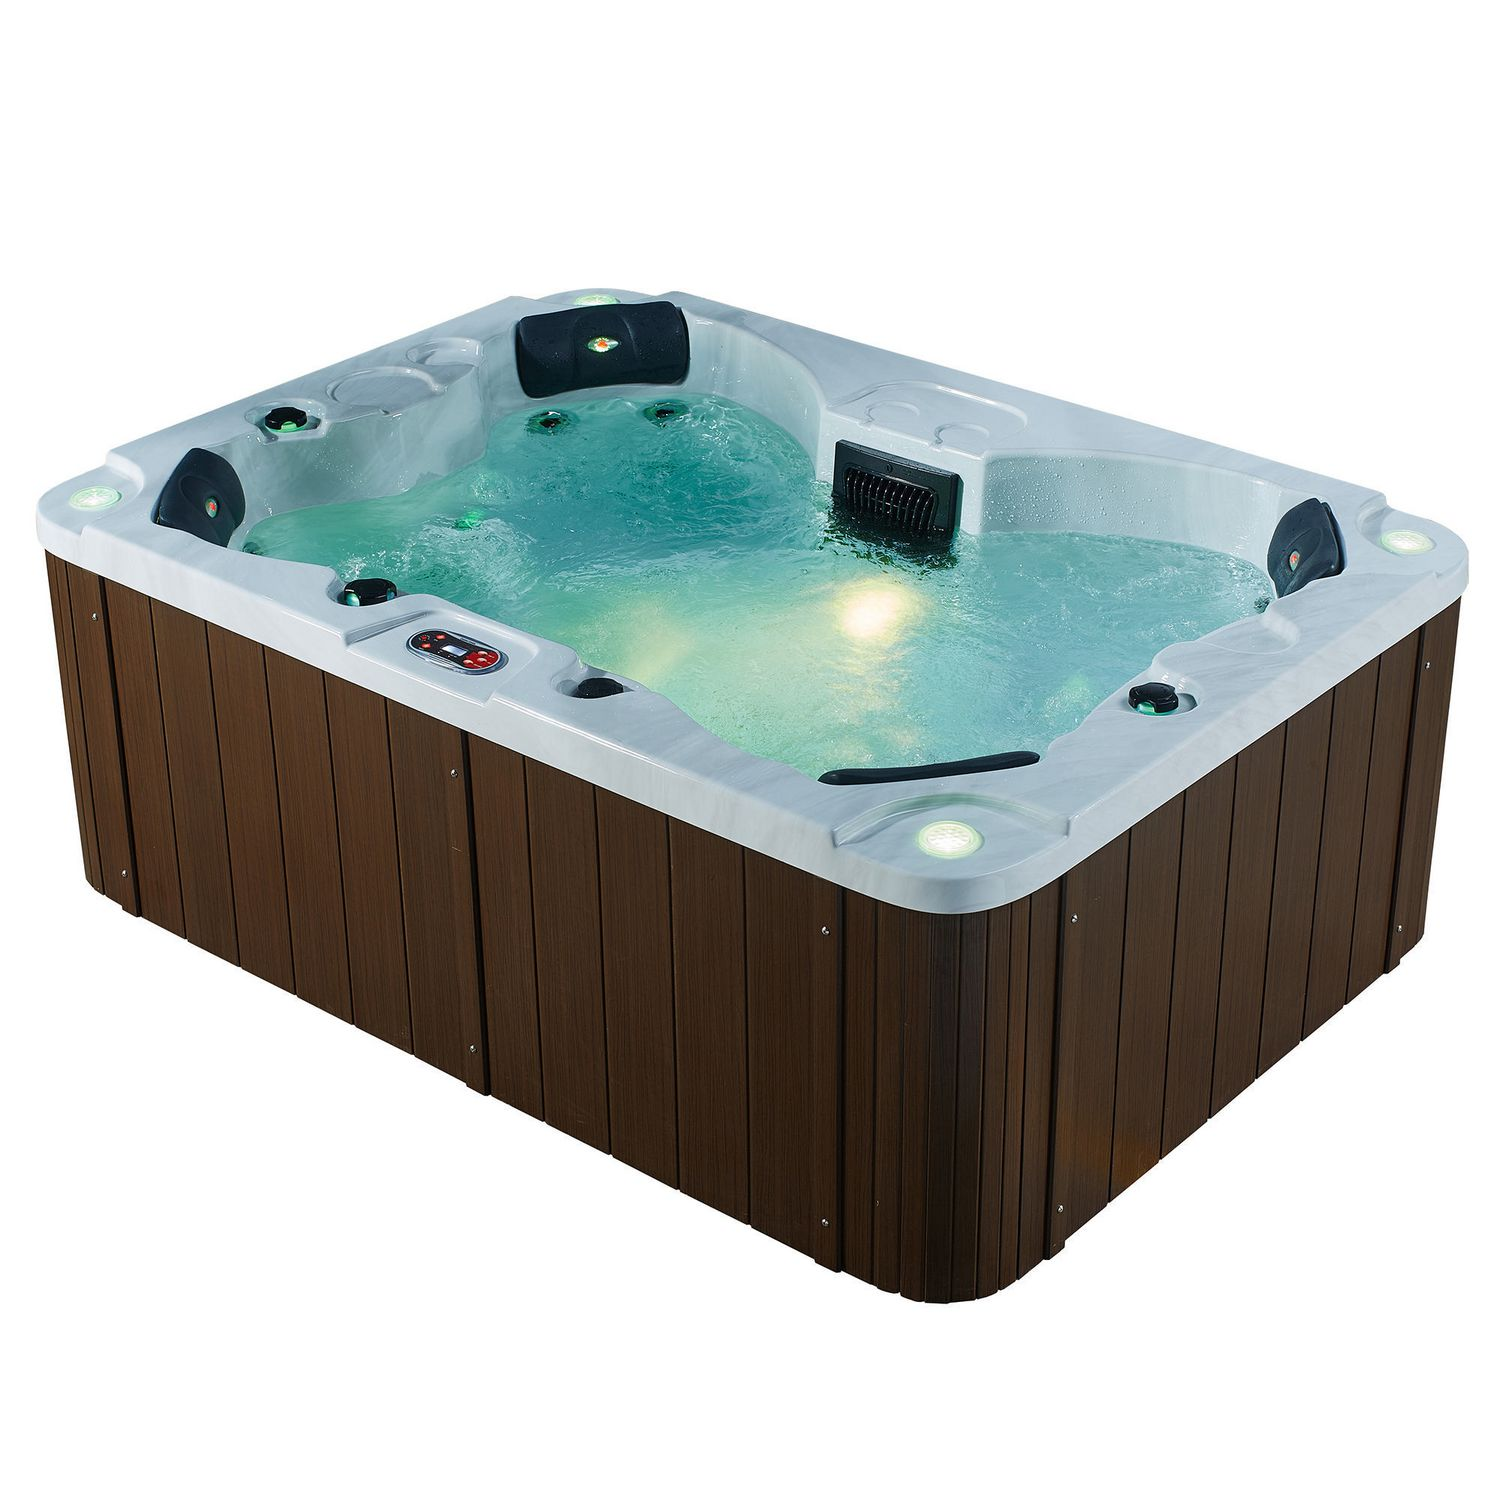 amazing good electric a to tub glamorous beauty cost full jacuzzi soft install of hot tubs much installation is sided size how wonderful